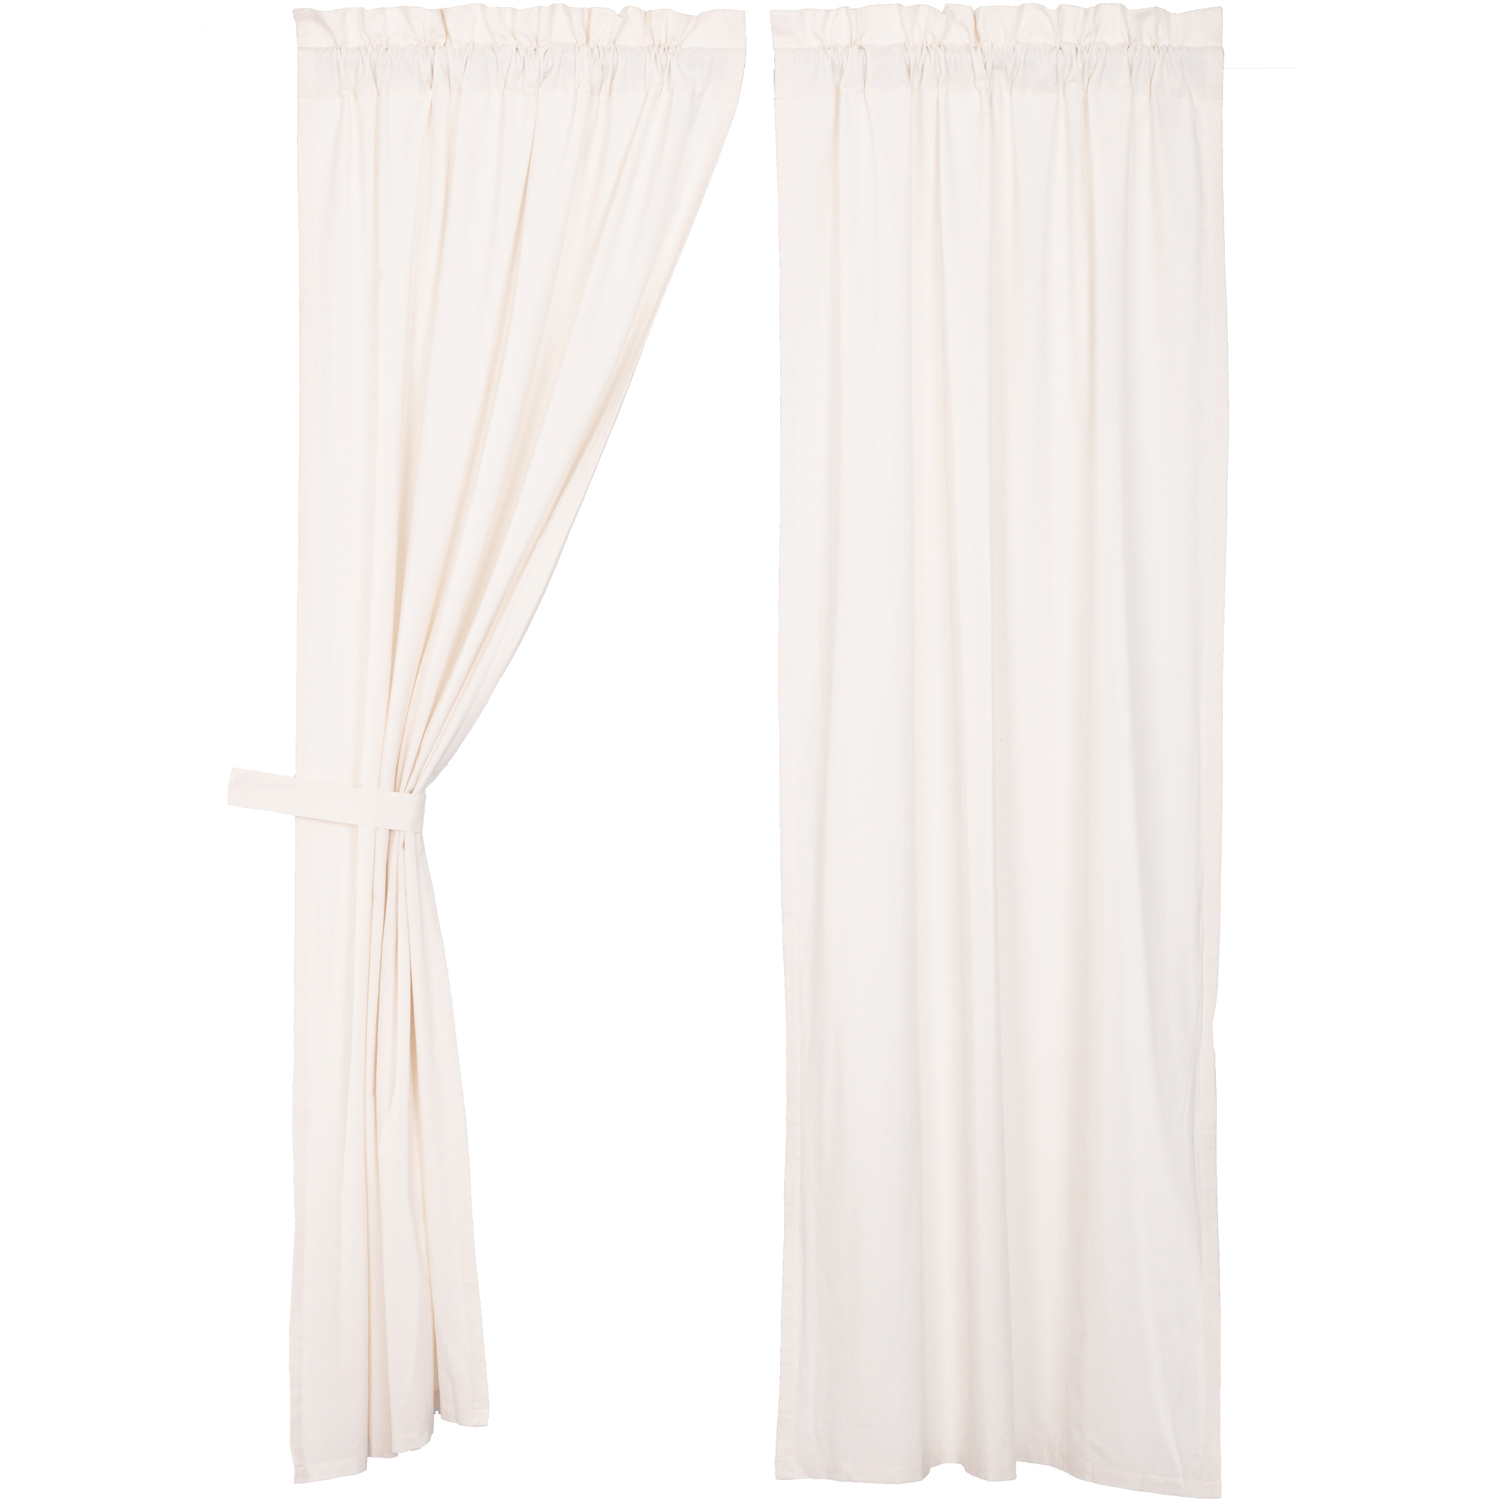 Simple Life Flax Antique White Panel Set of 2 84x40